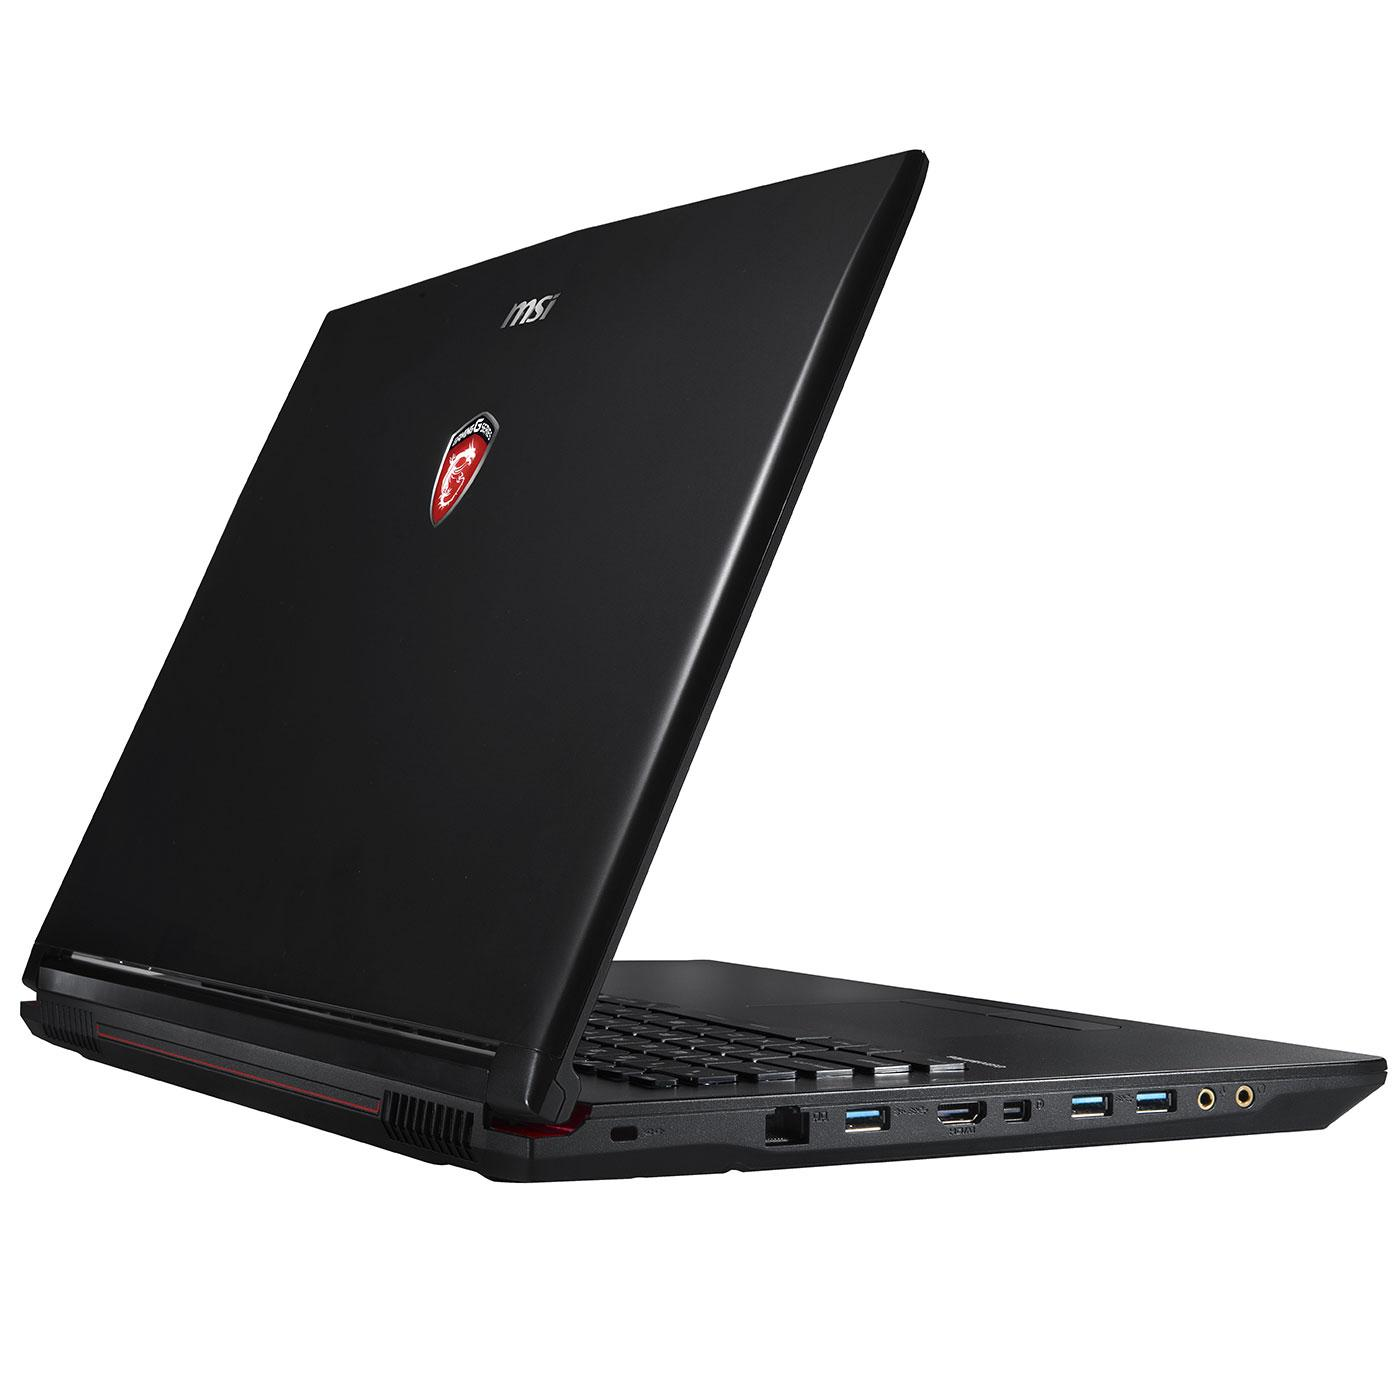 Msi GP72 2QD-018FR - I7 2,7 GHz - HDD + SSD 1000 Go - RAM 8 Go - AZERTY